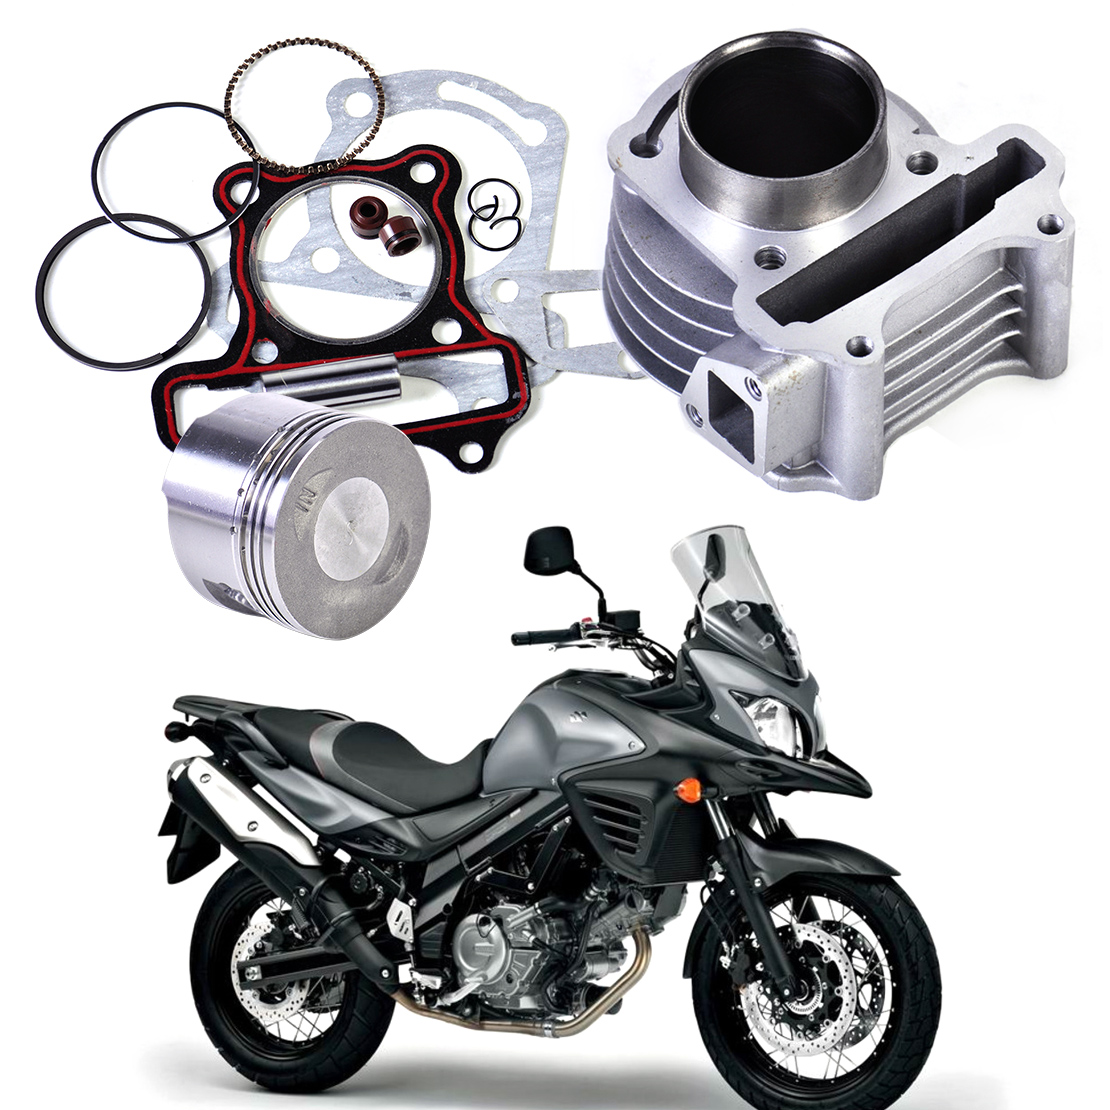 DWCX Nya 47mm Big Bore Kit Cylinder Piston Rings passar för GY6 50cc till 80cc 4 Stroke Scooter Moped ATV med 139QMB 139QMA motor